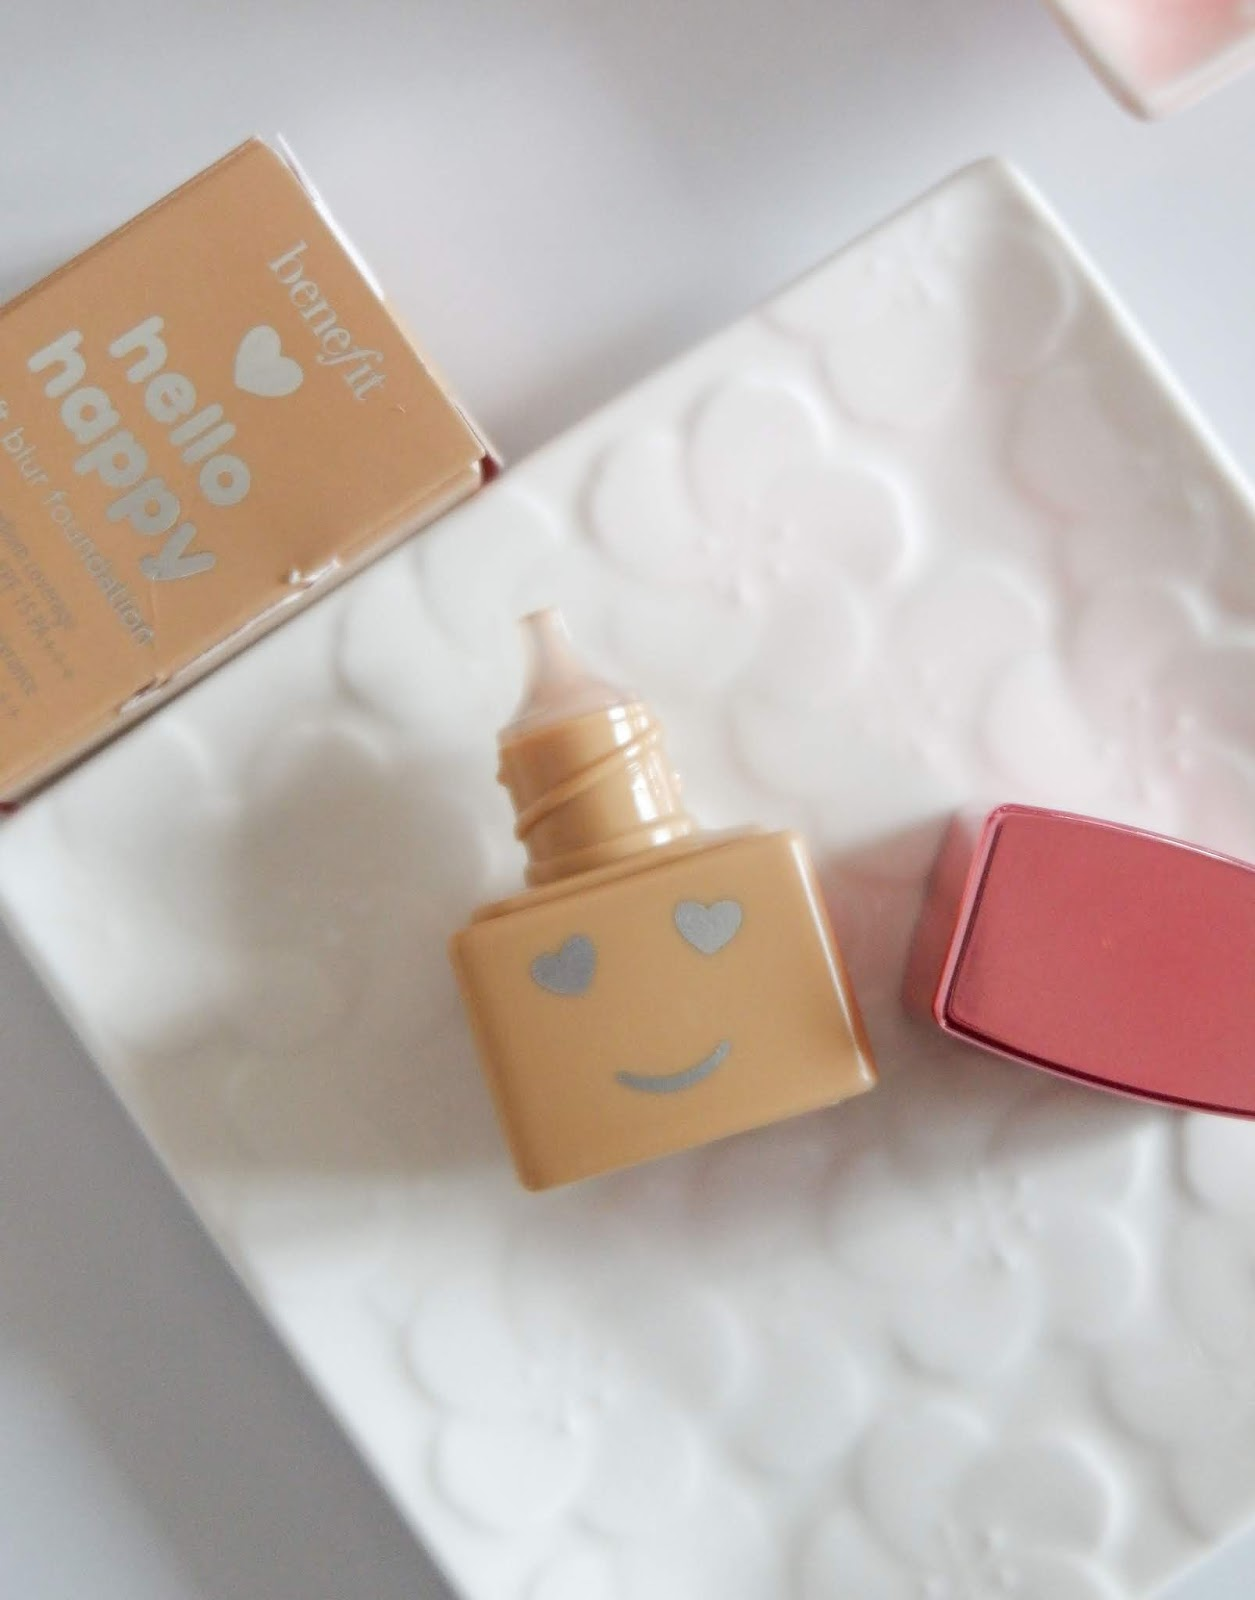 BENEFIT COSMETICS: HELLO HAPPY SOFT BLUR FOUNDATION REVIEW